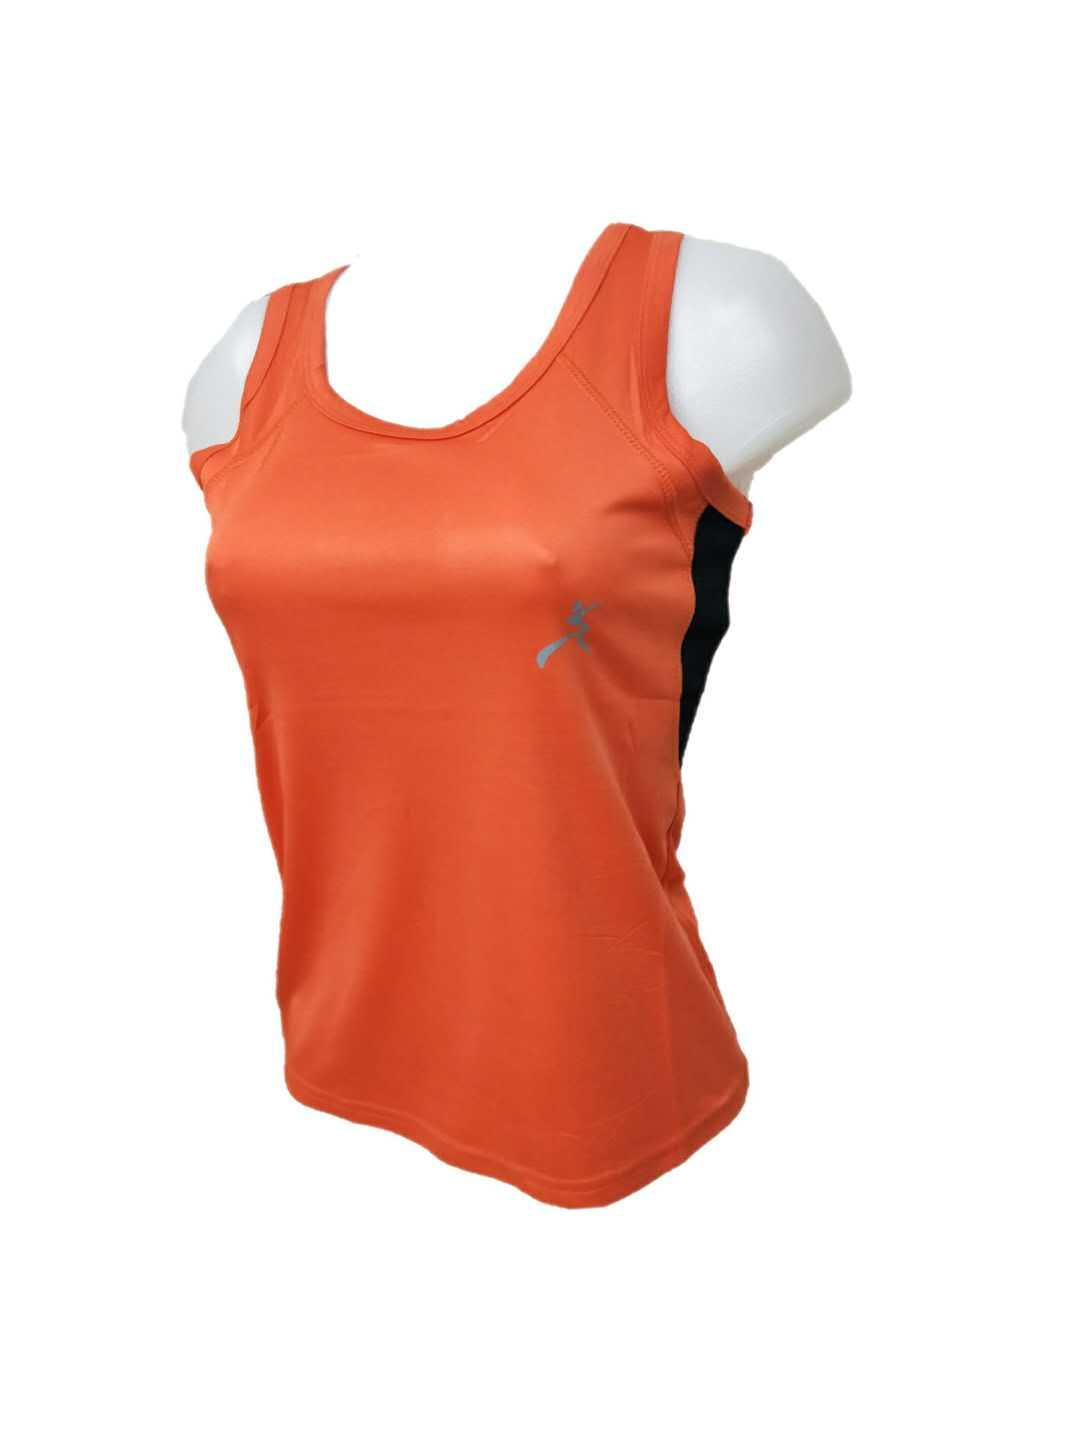 fb2a5ce64efceb Sports Tops for Women for sale - Sports Shirts for Women Online ...